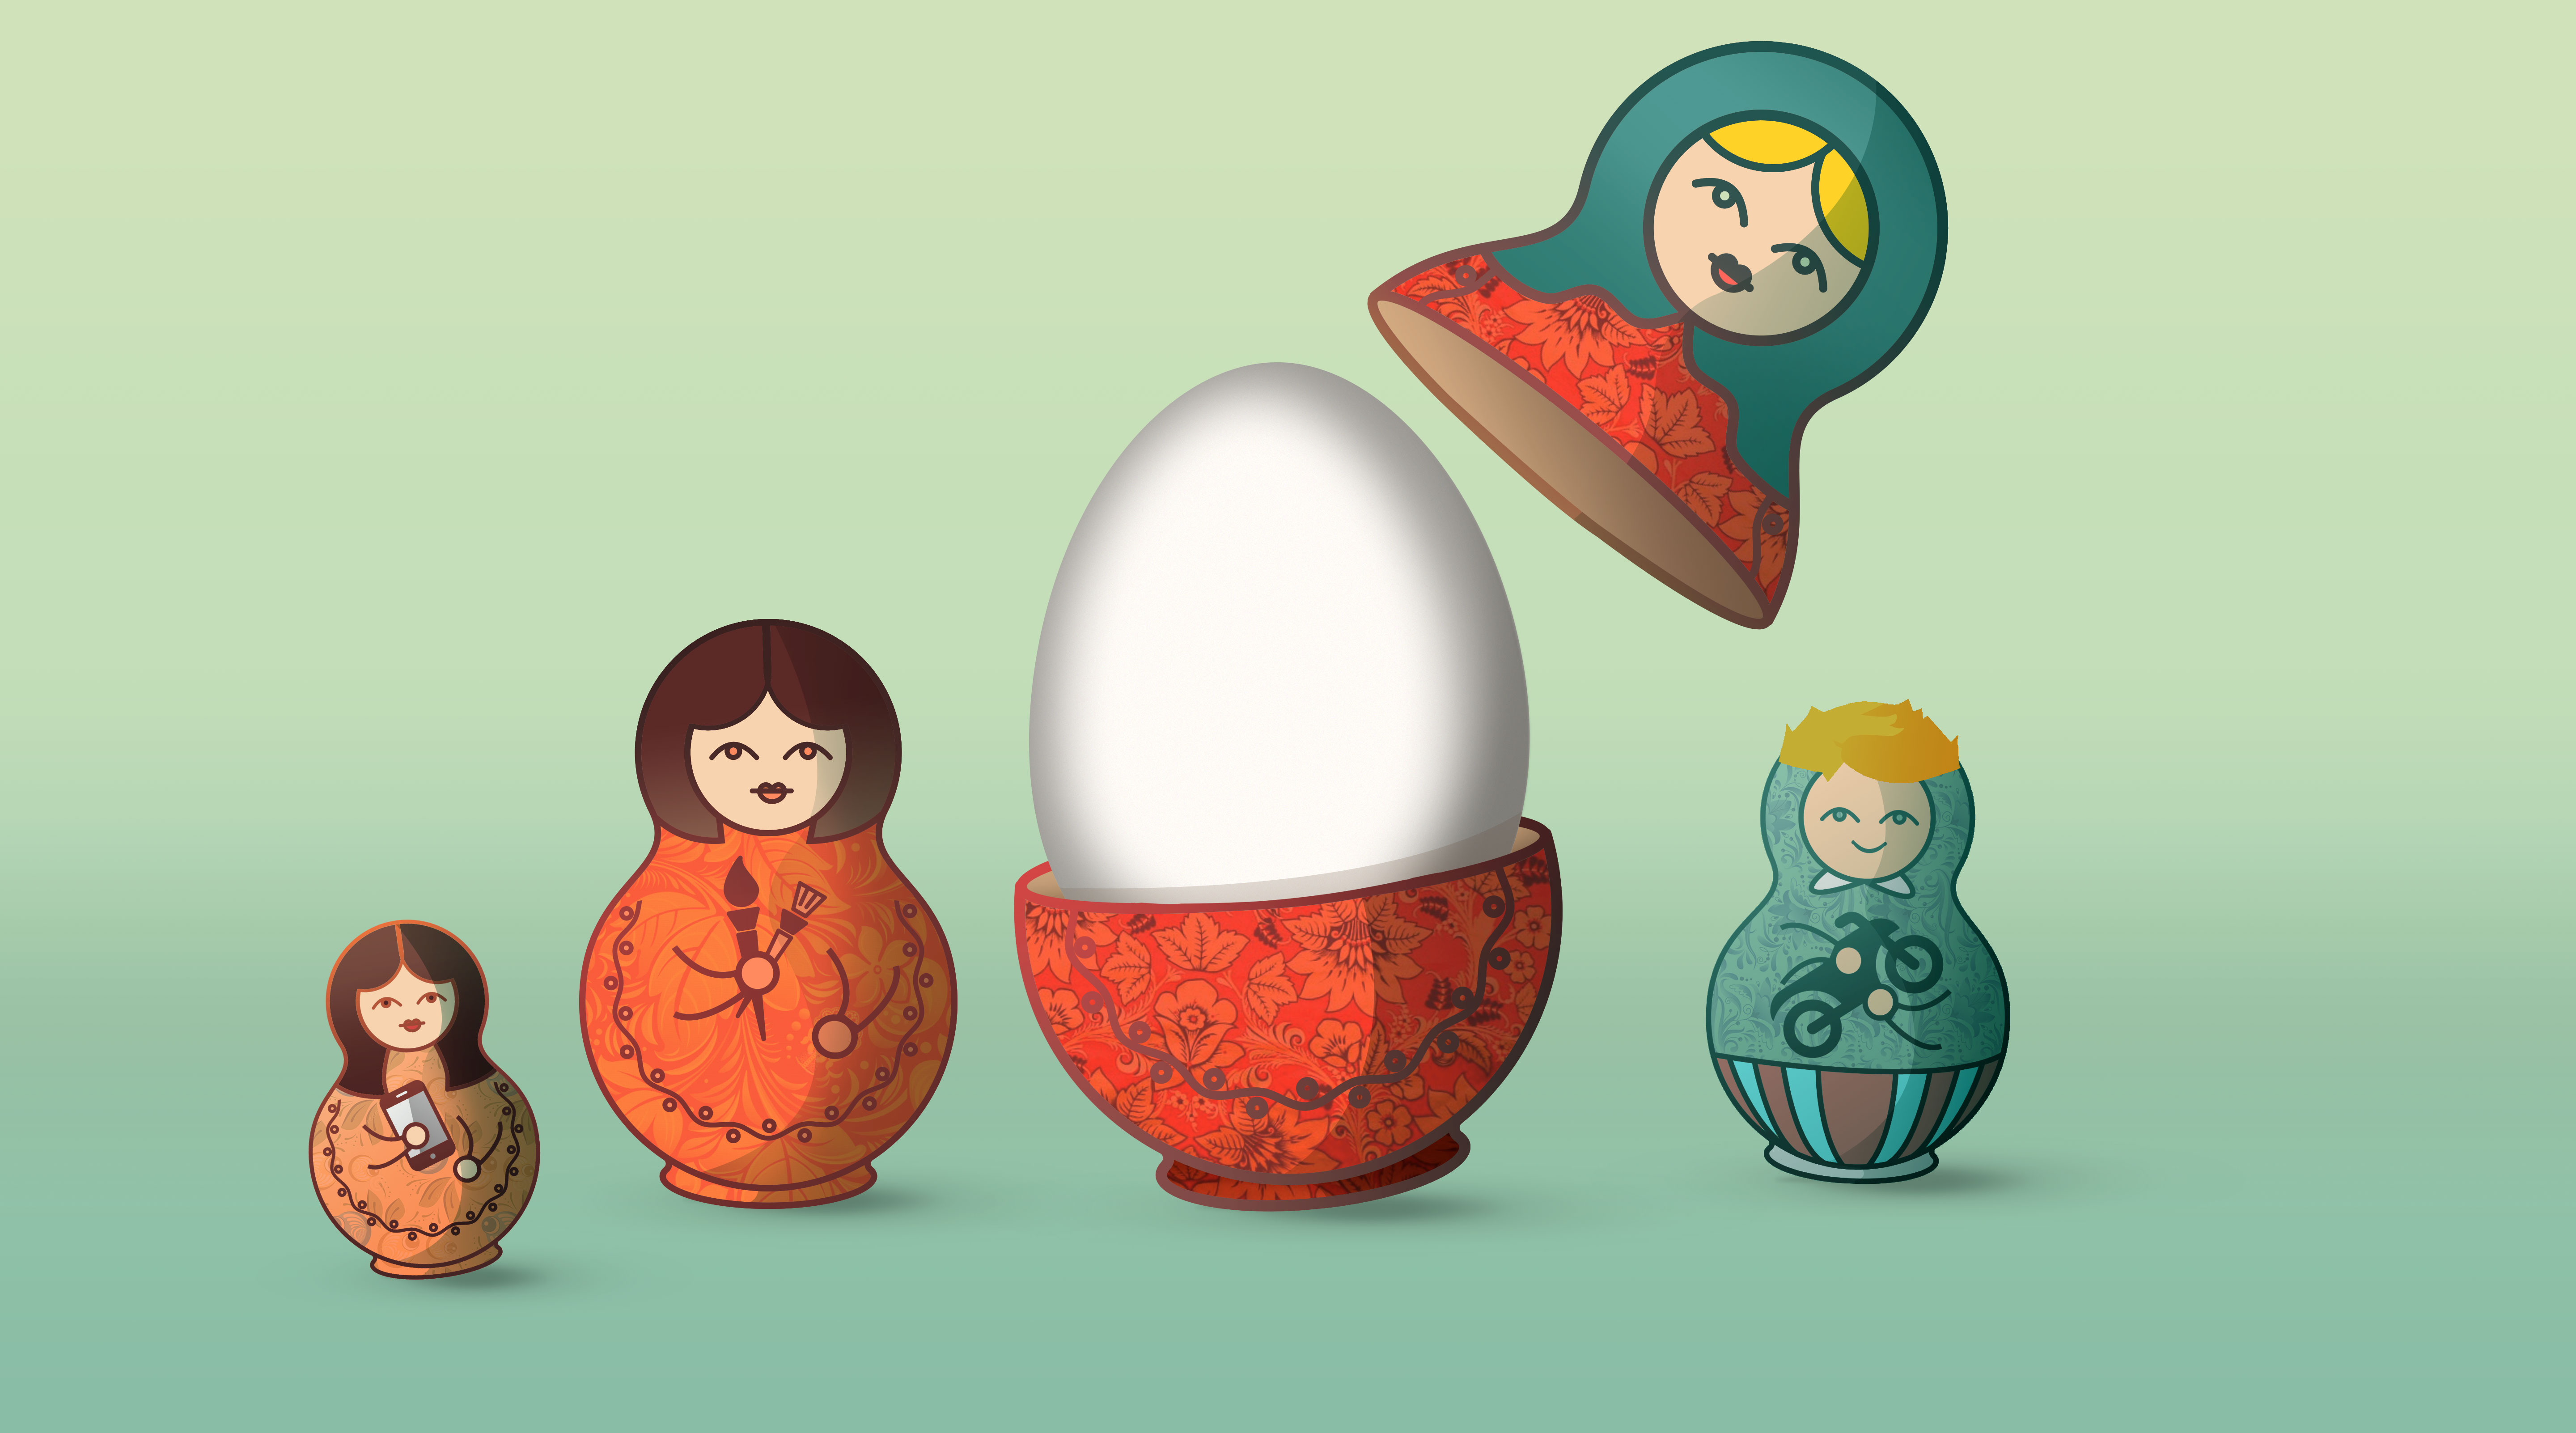 Happy Birthday, Mudda! Have some matryoshka puppets!